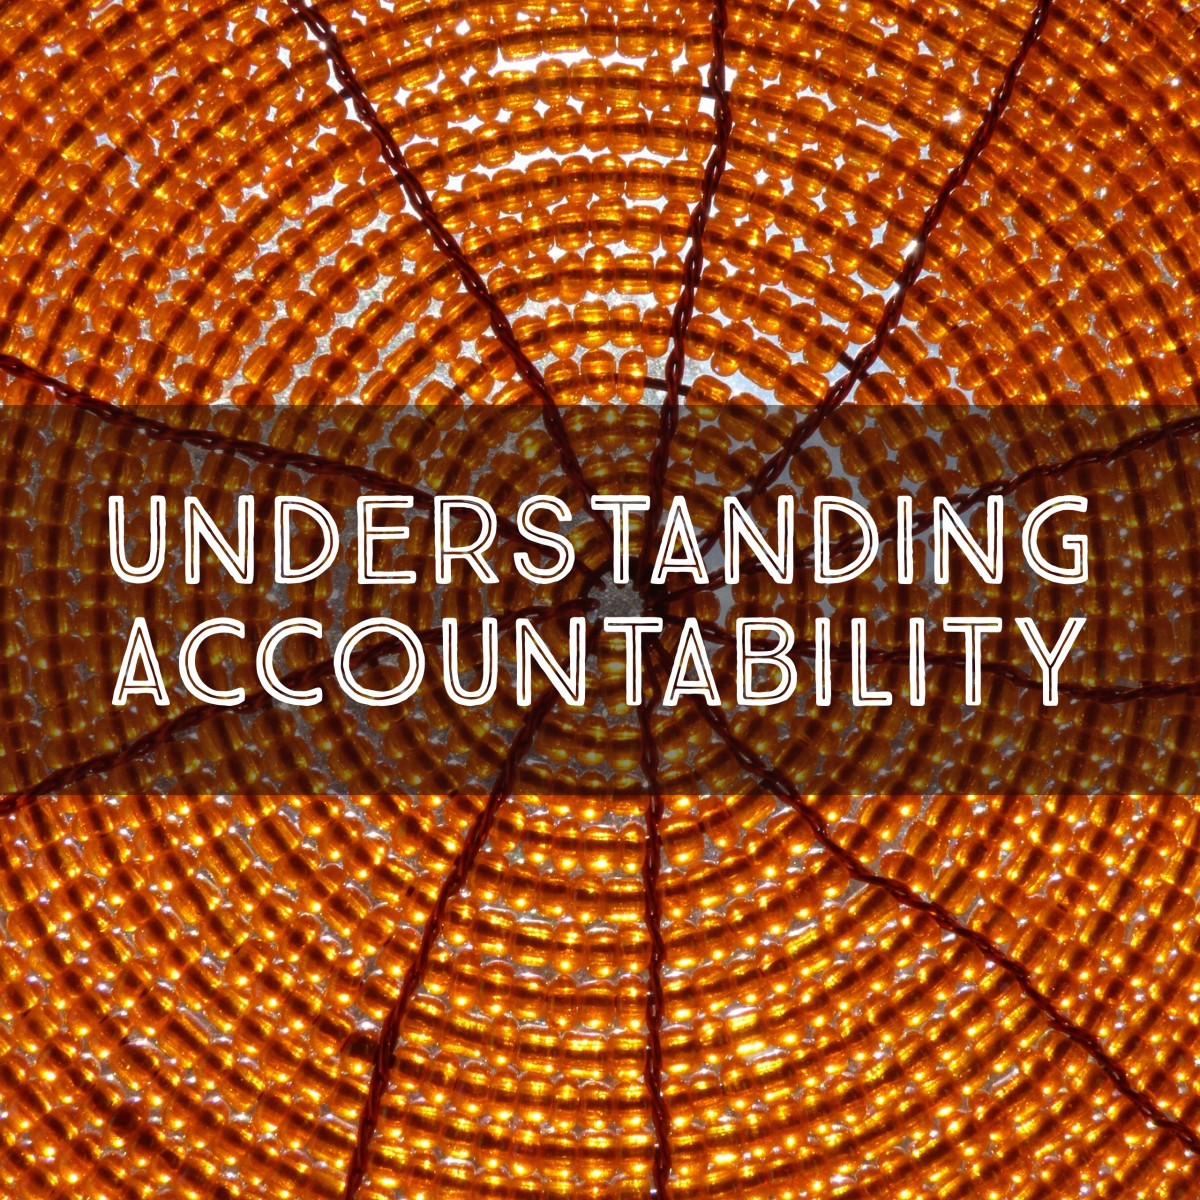 IMG_6121 Understanding Accountability work environment people leadership fallacies culture career